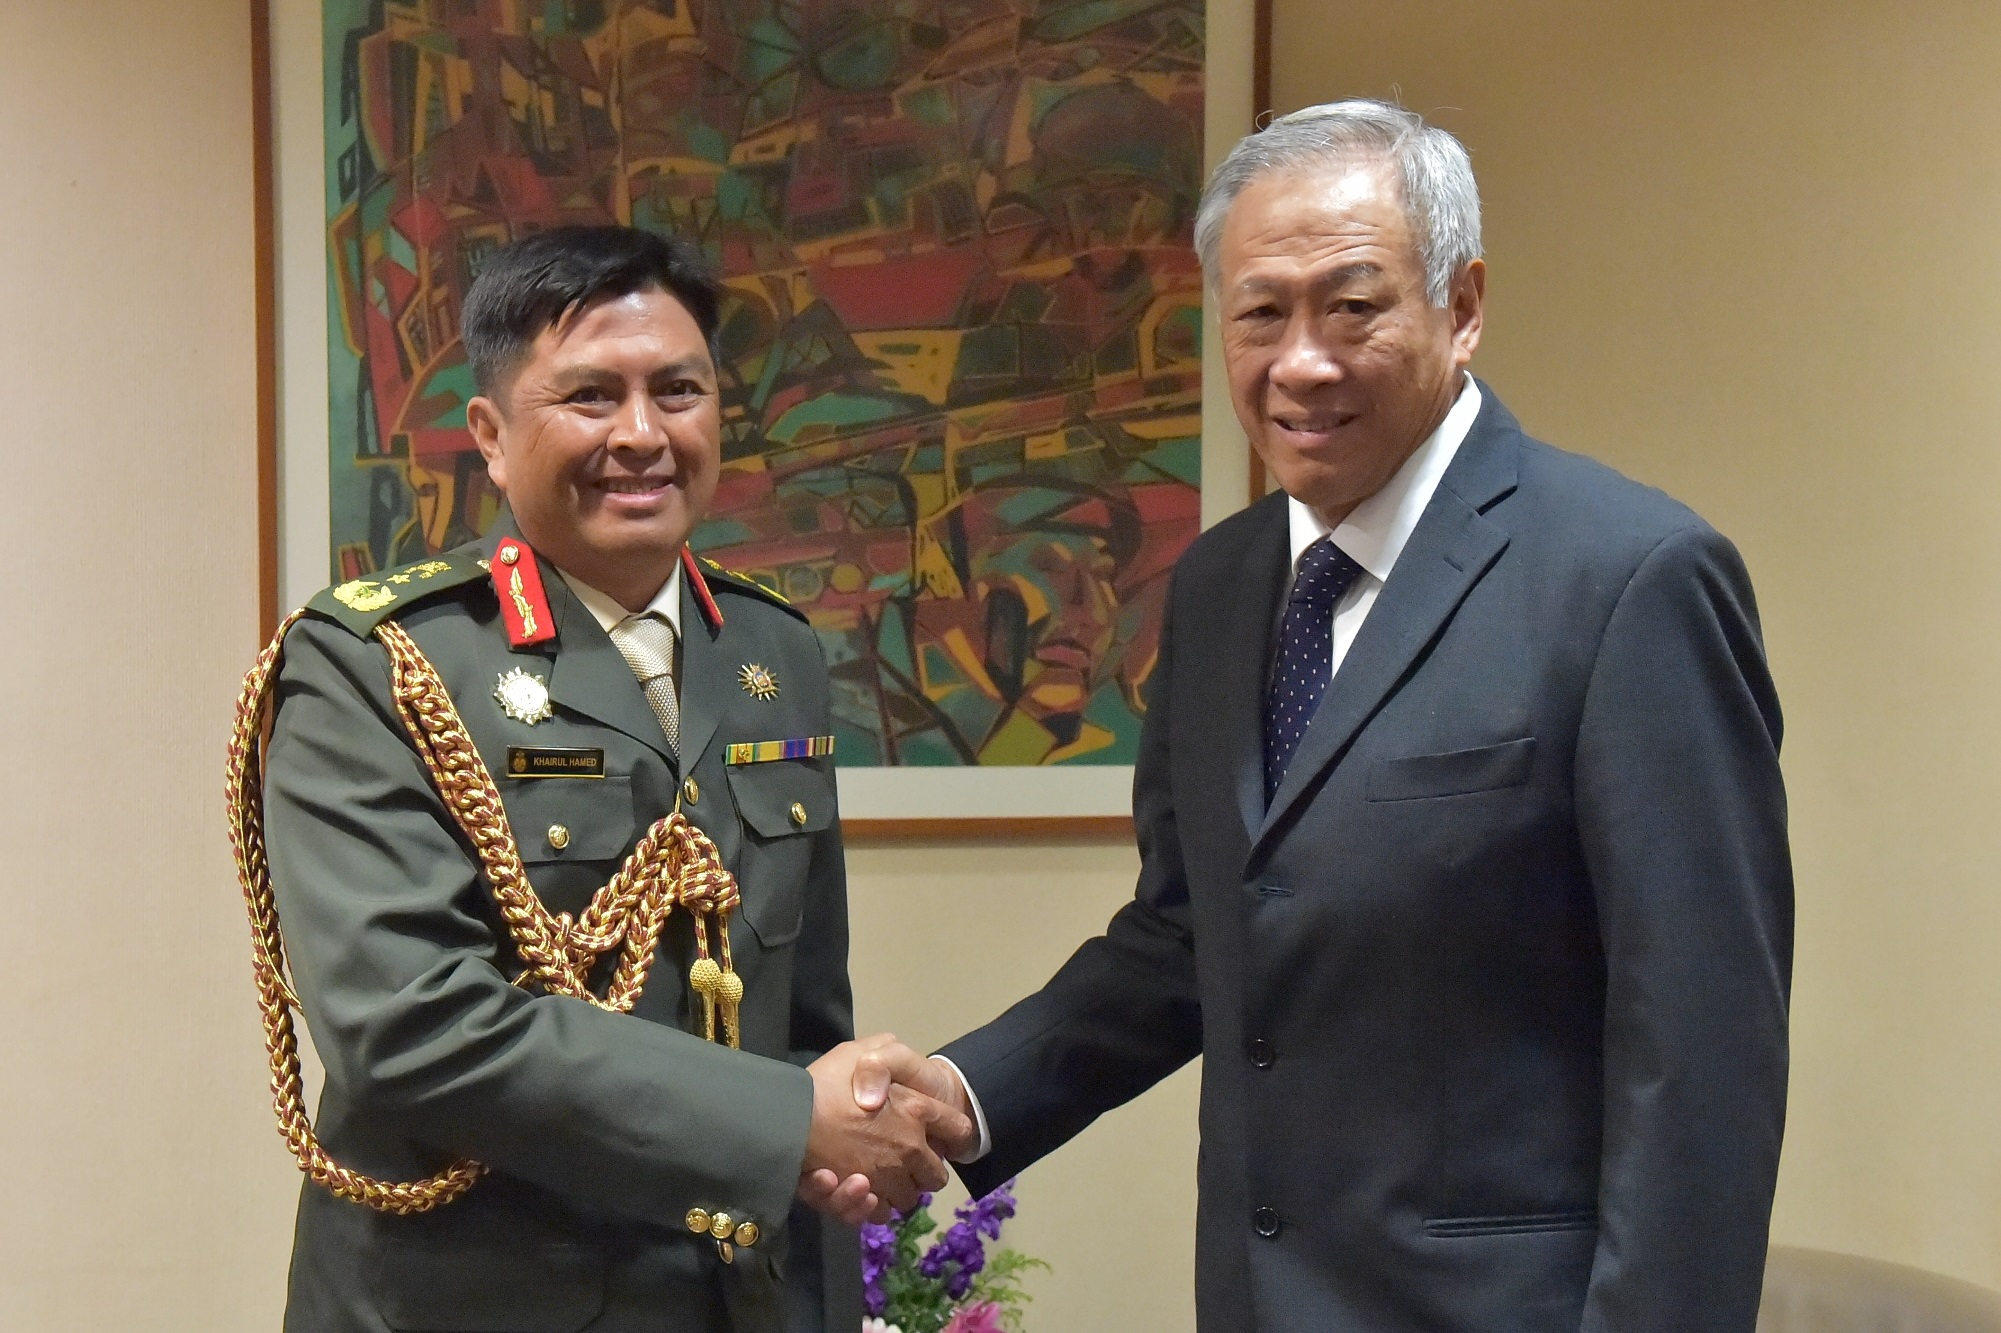 Commander of the Royal Brunei Land Forces Brigadier General (BG) Awang Khairul Hamed bin Awang Haji Lampoh (left) calling on Minister for Defence Dr Ng Eng Hen (right).